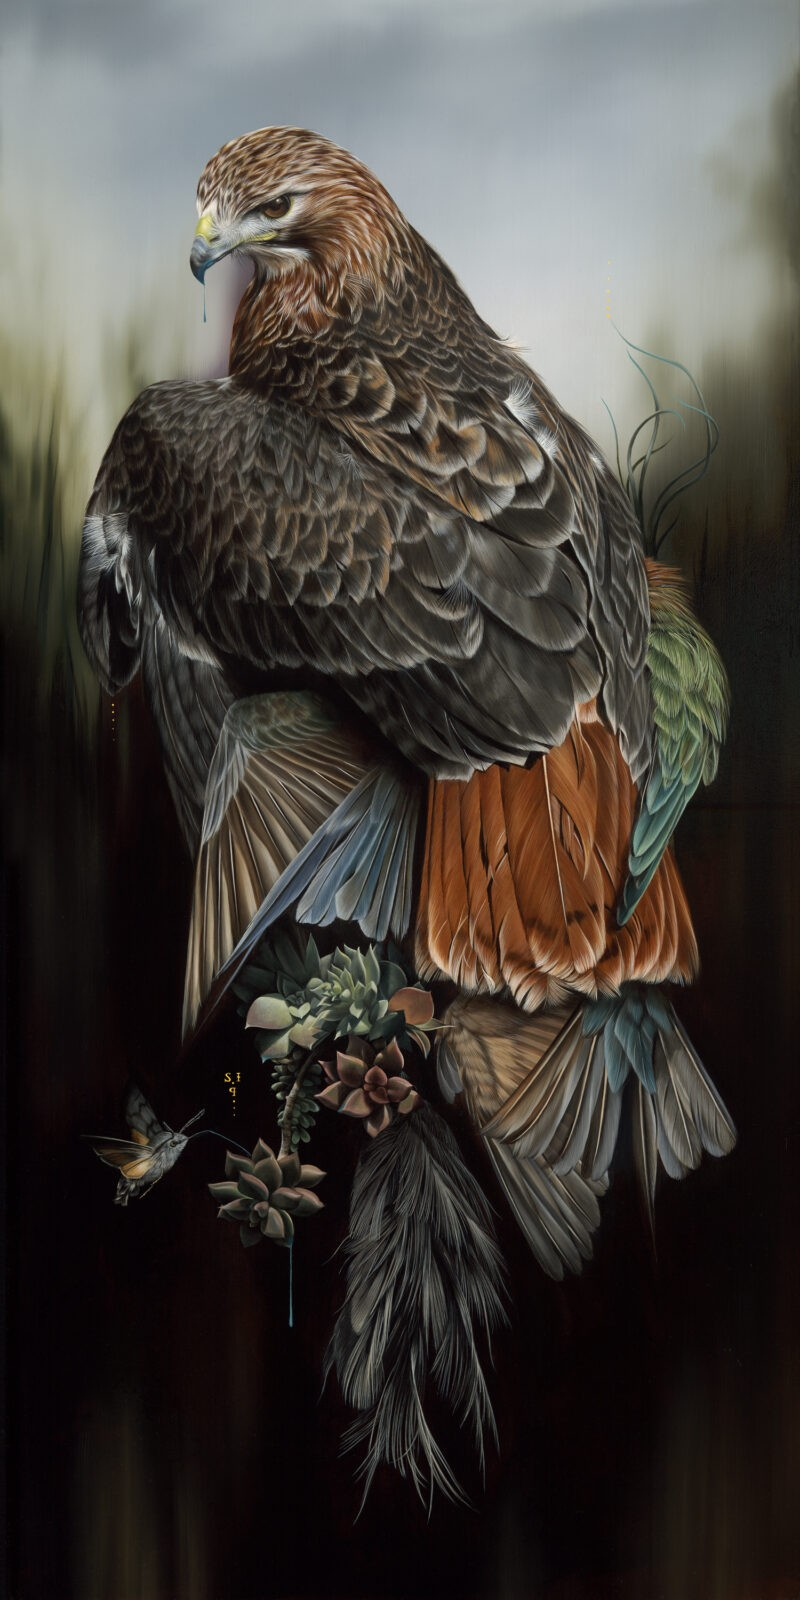 Fierce Feathered Portraits of Brooding Birds by Josie Morway